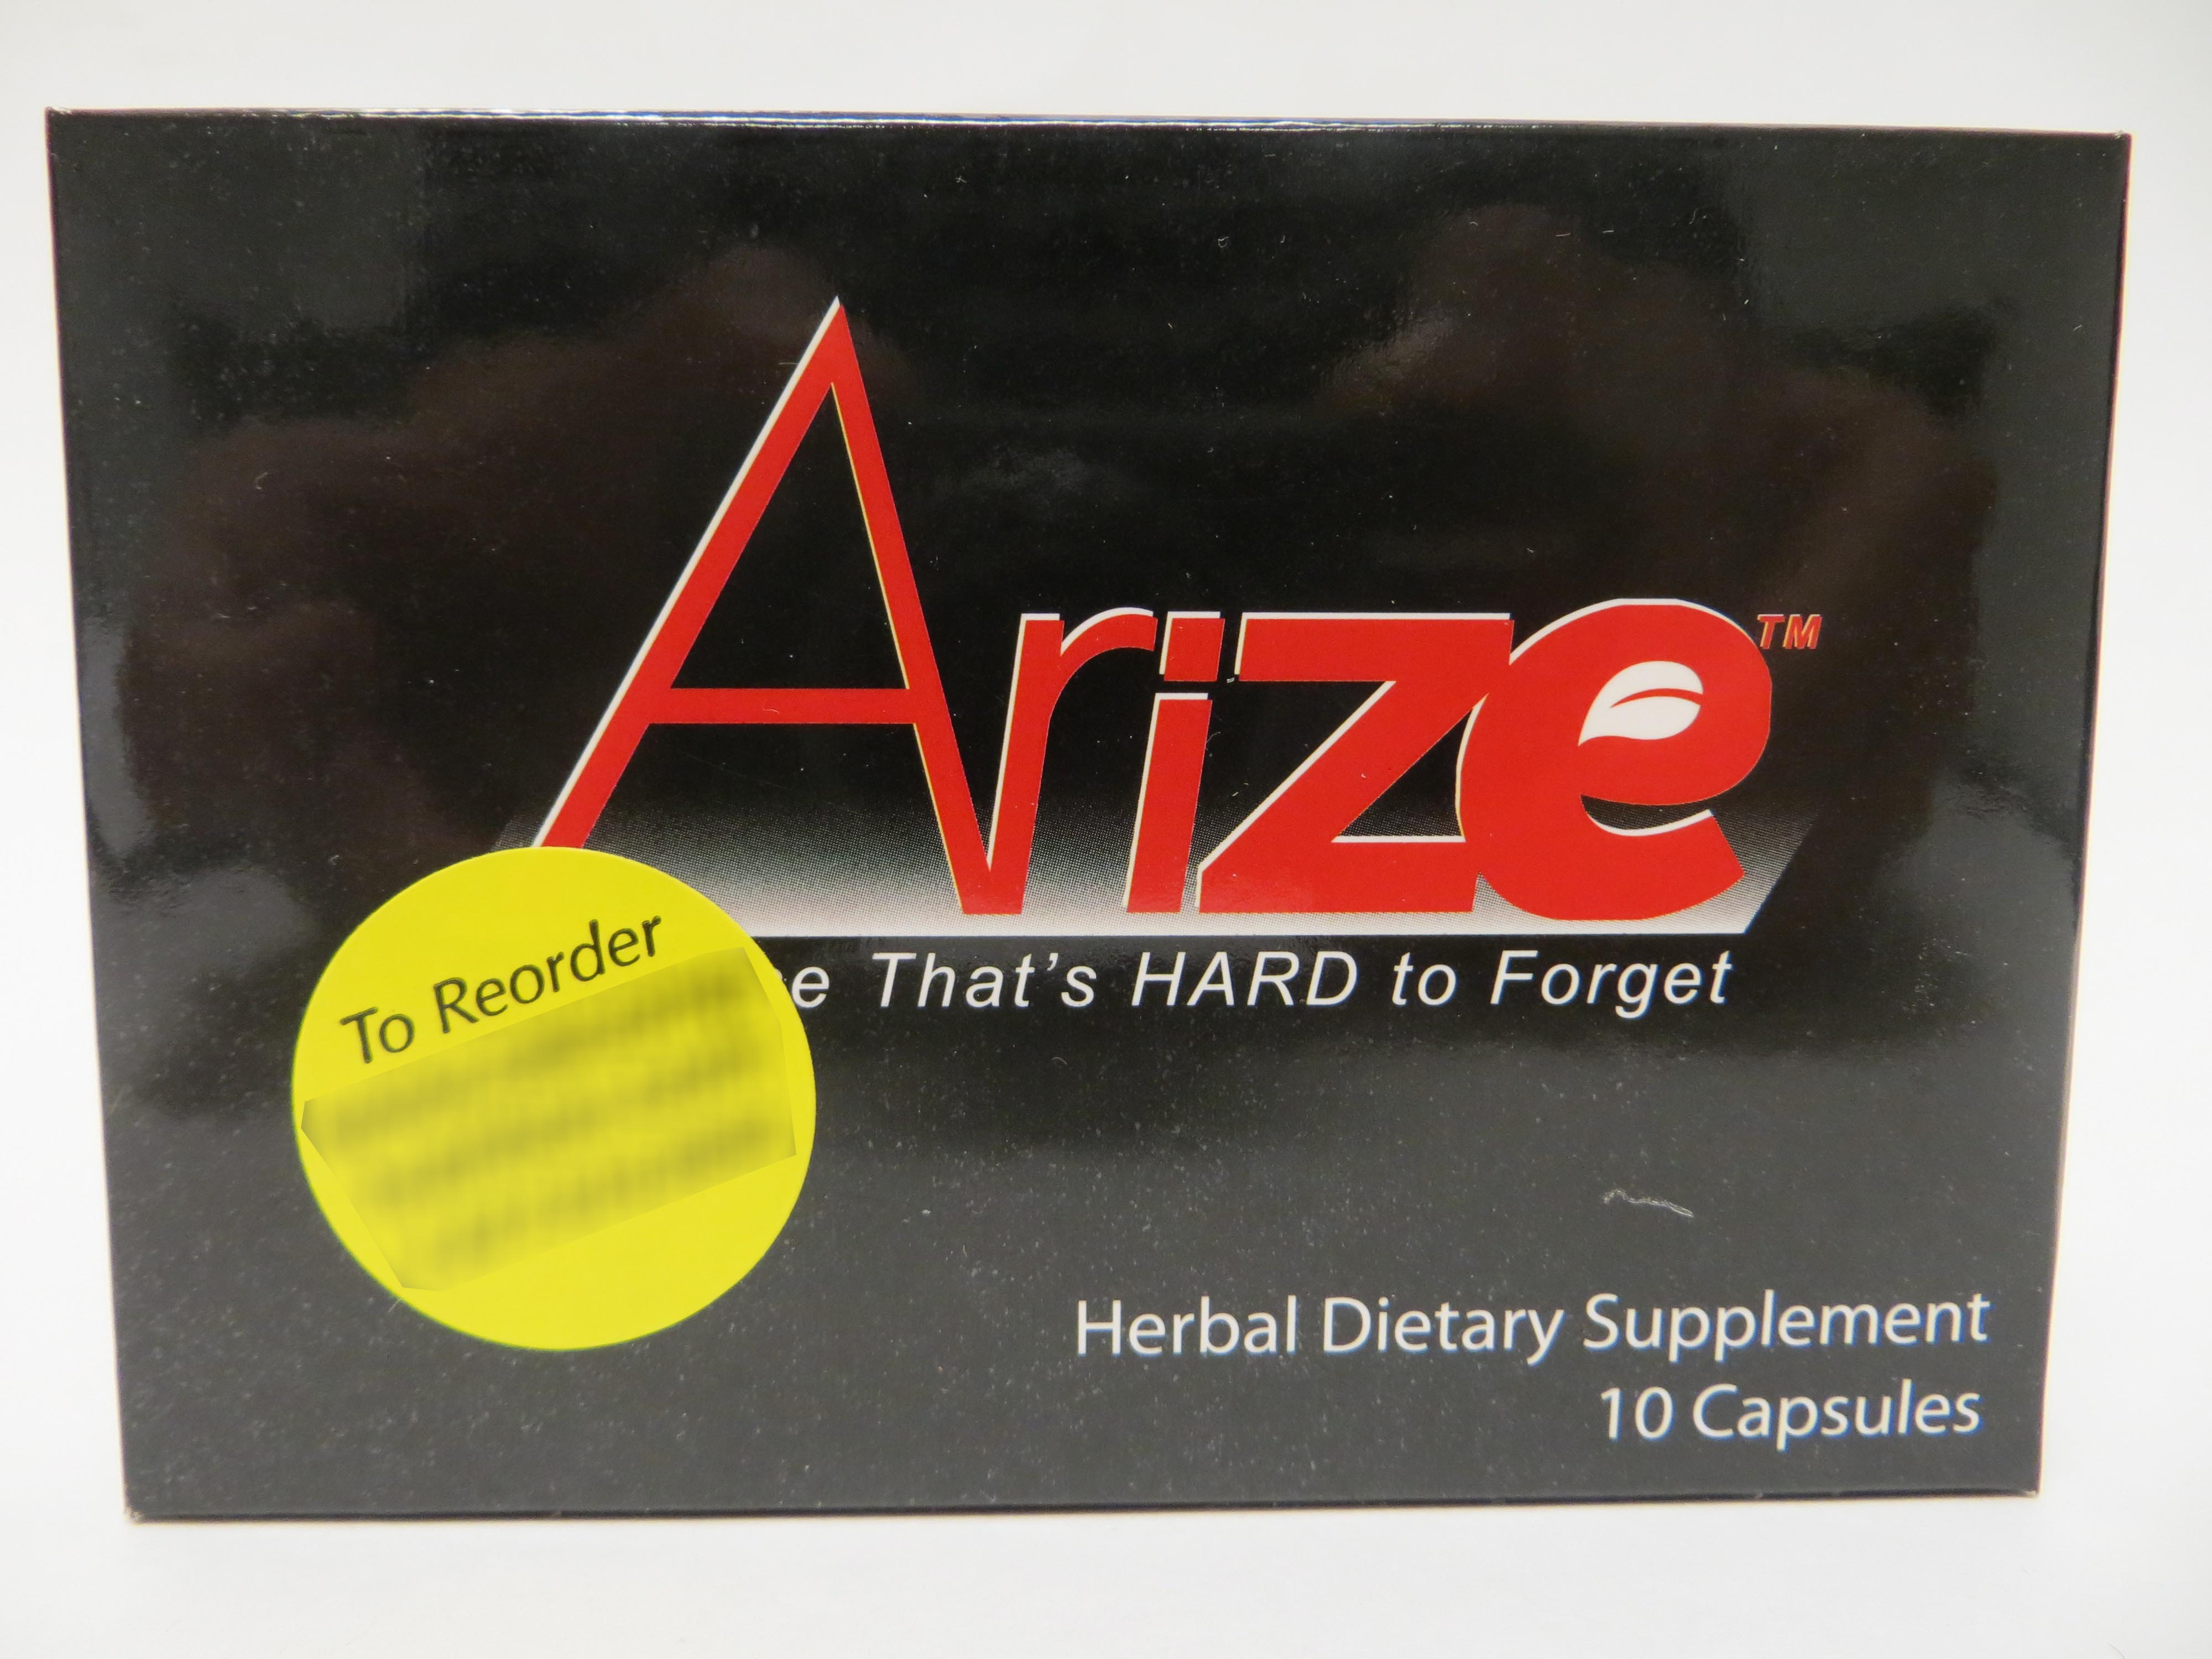 Image of the illigal product: Arize